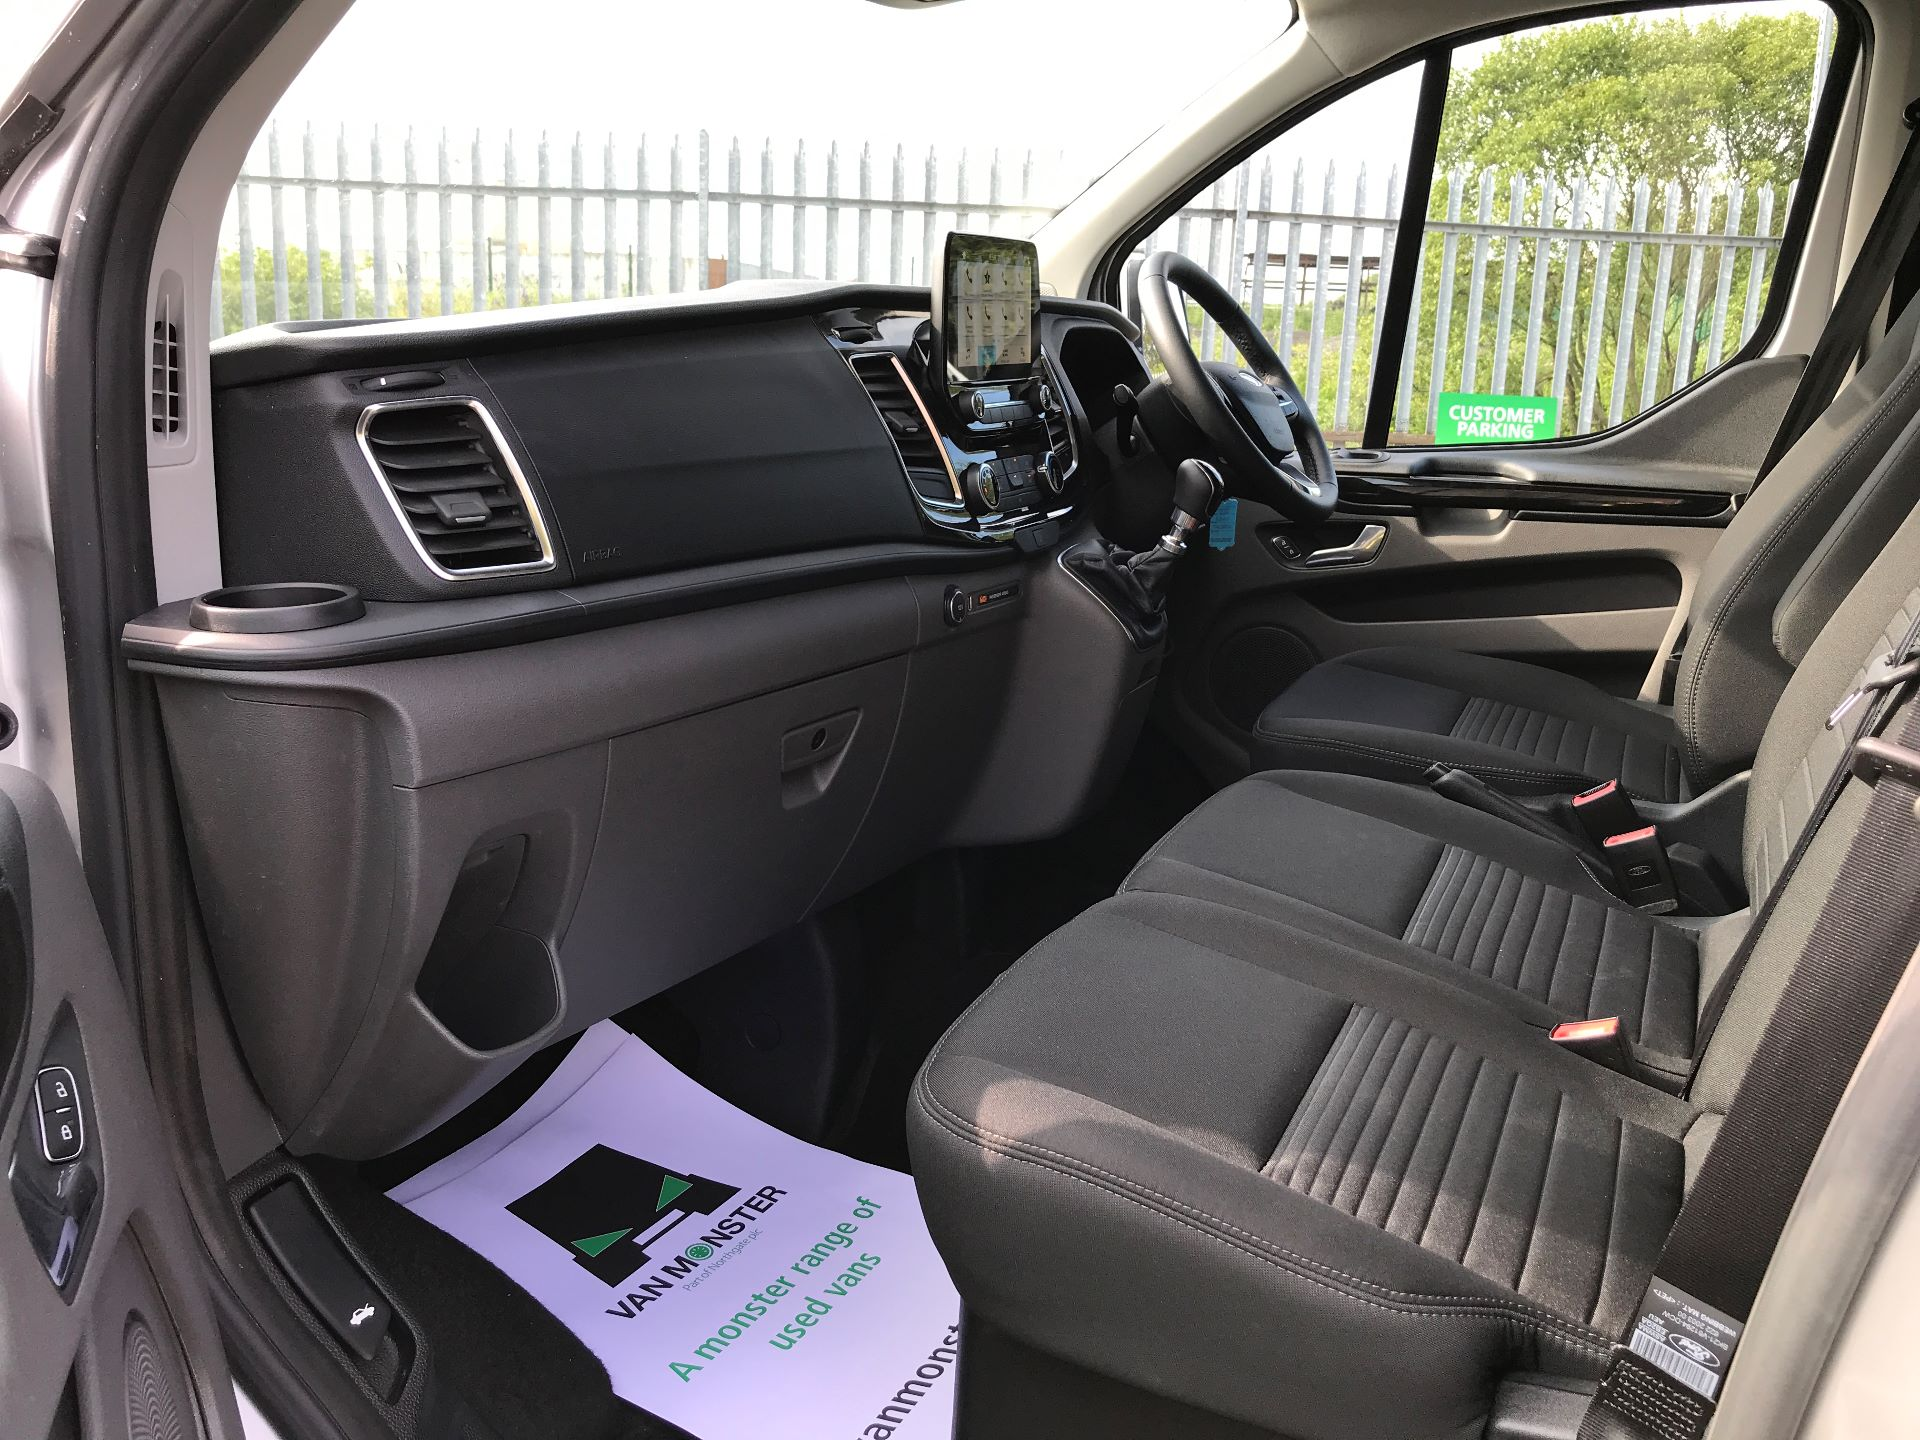 2018 Ford Transit Custom 320 L1 2.0TDCI 130PS LOW ROOF DOUBLE CAB LIMITED EURO 6 (HG68MPZ) Image 11